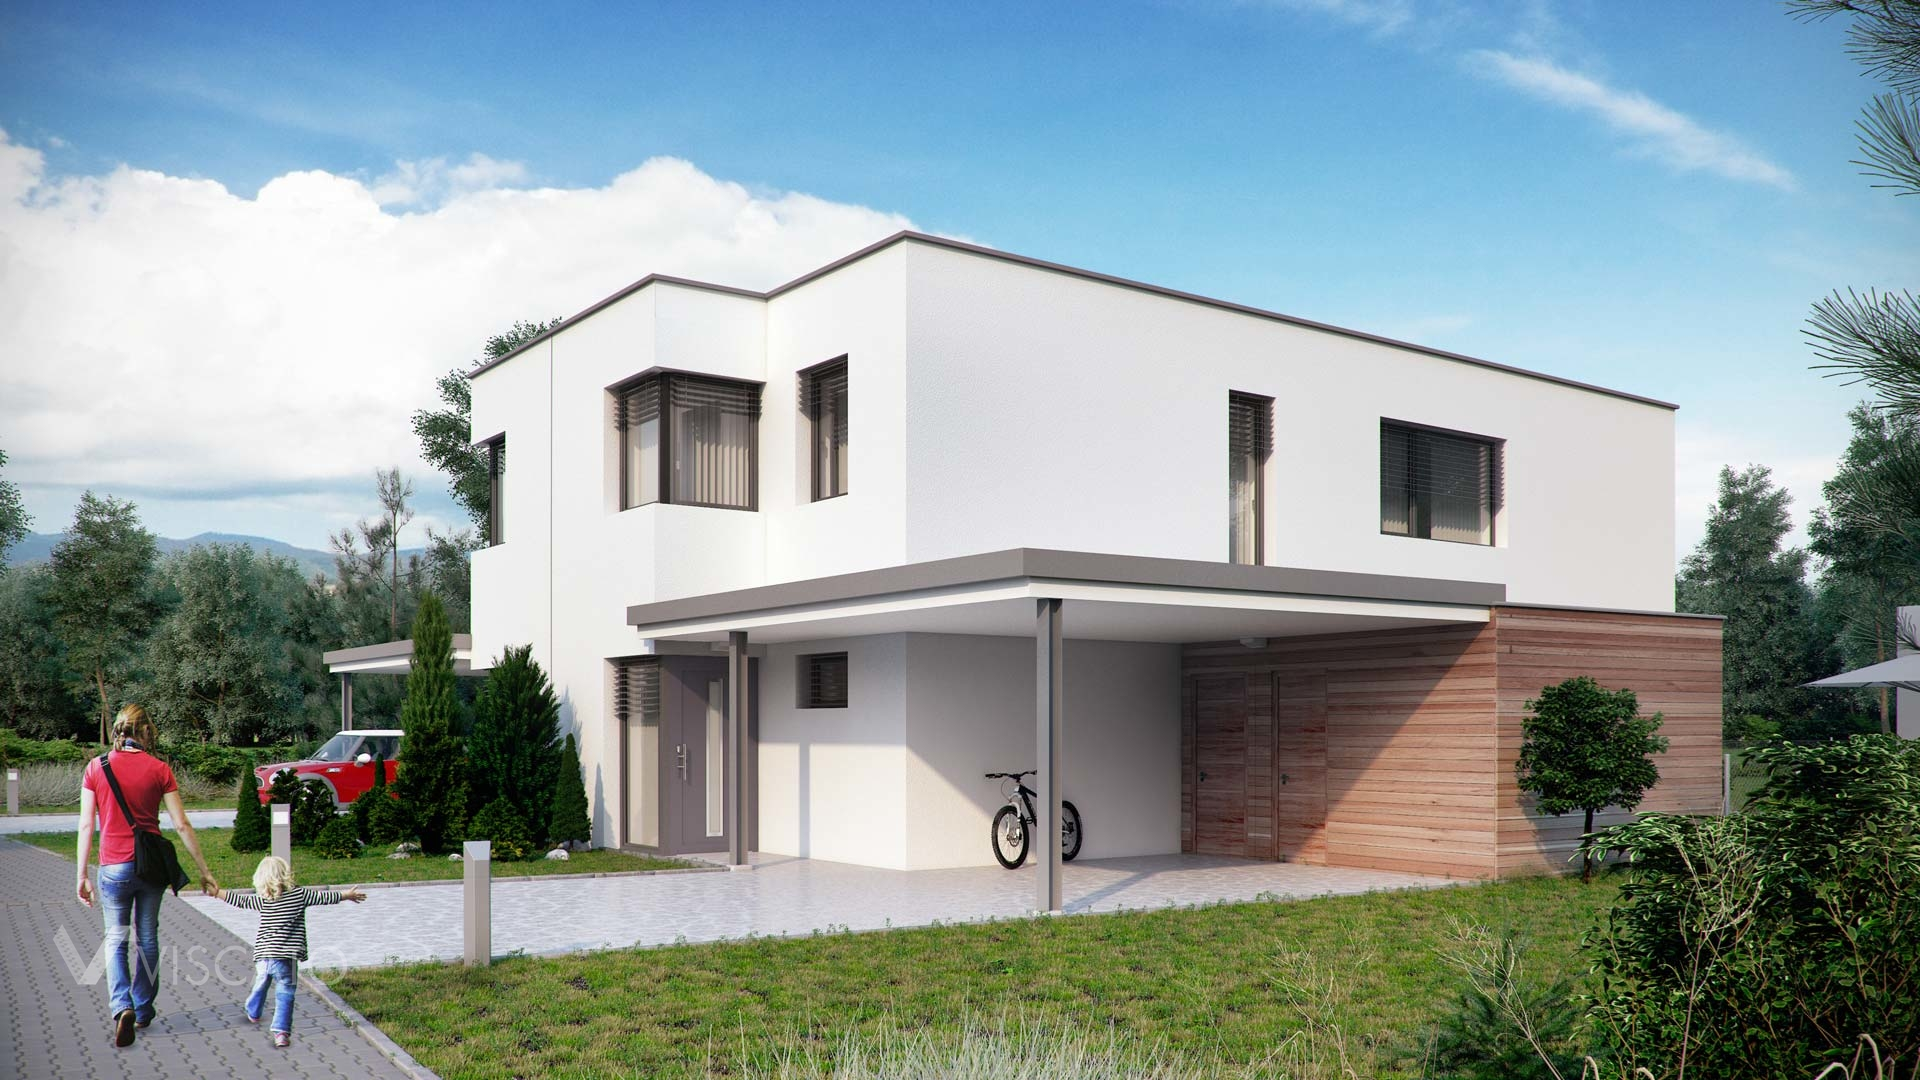 Linz twin house exterior visualization front view with car and sidewalk